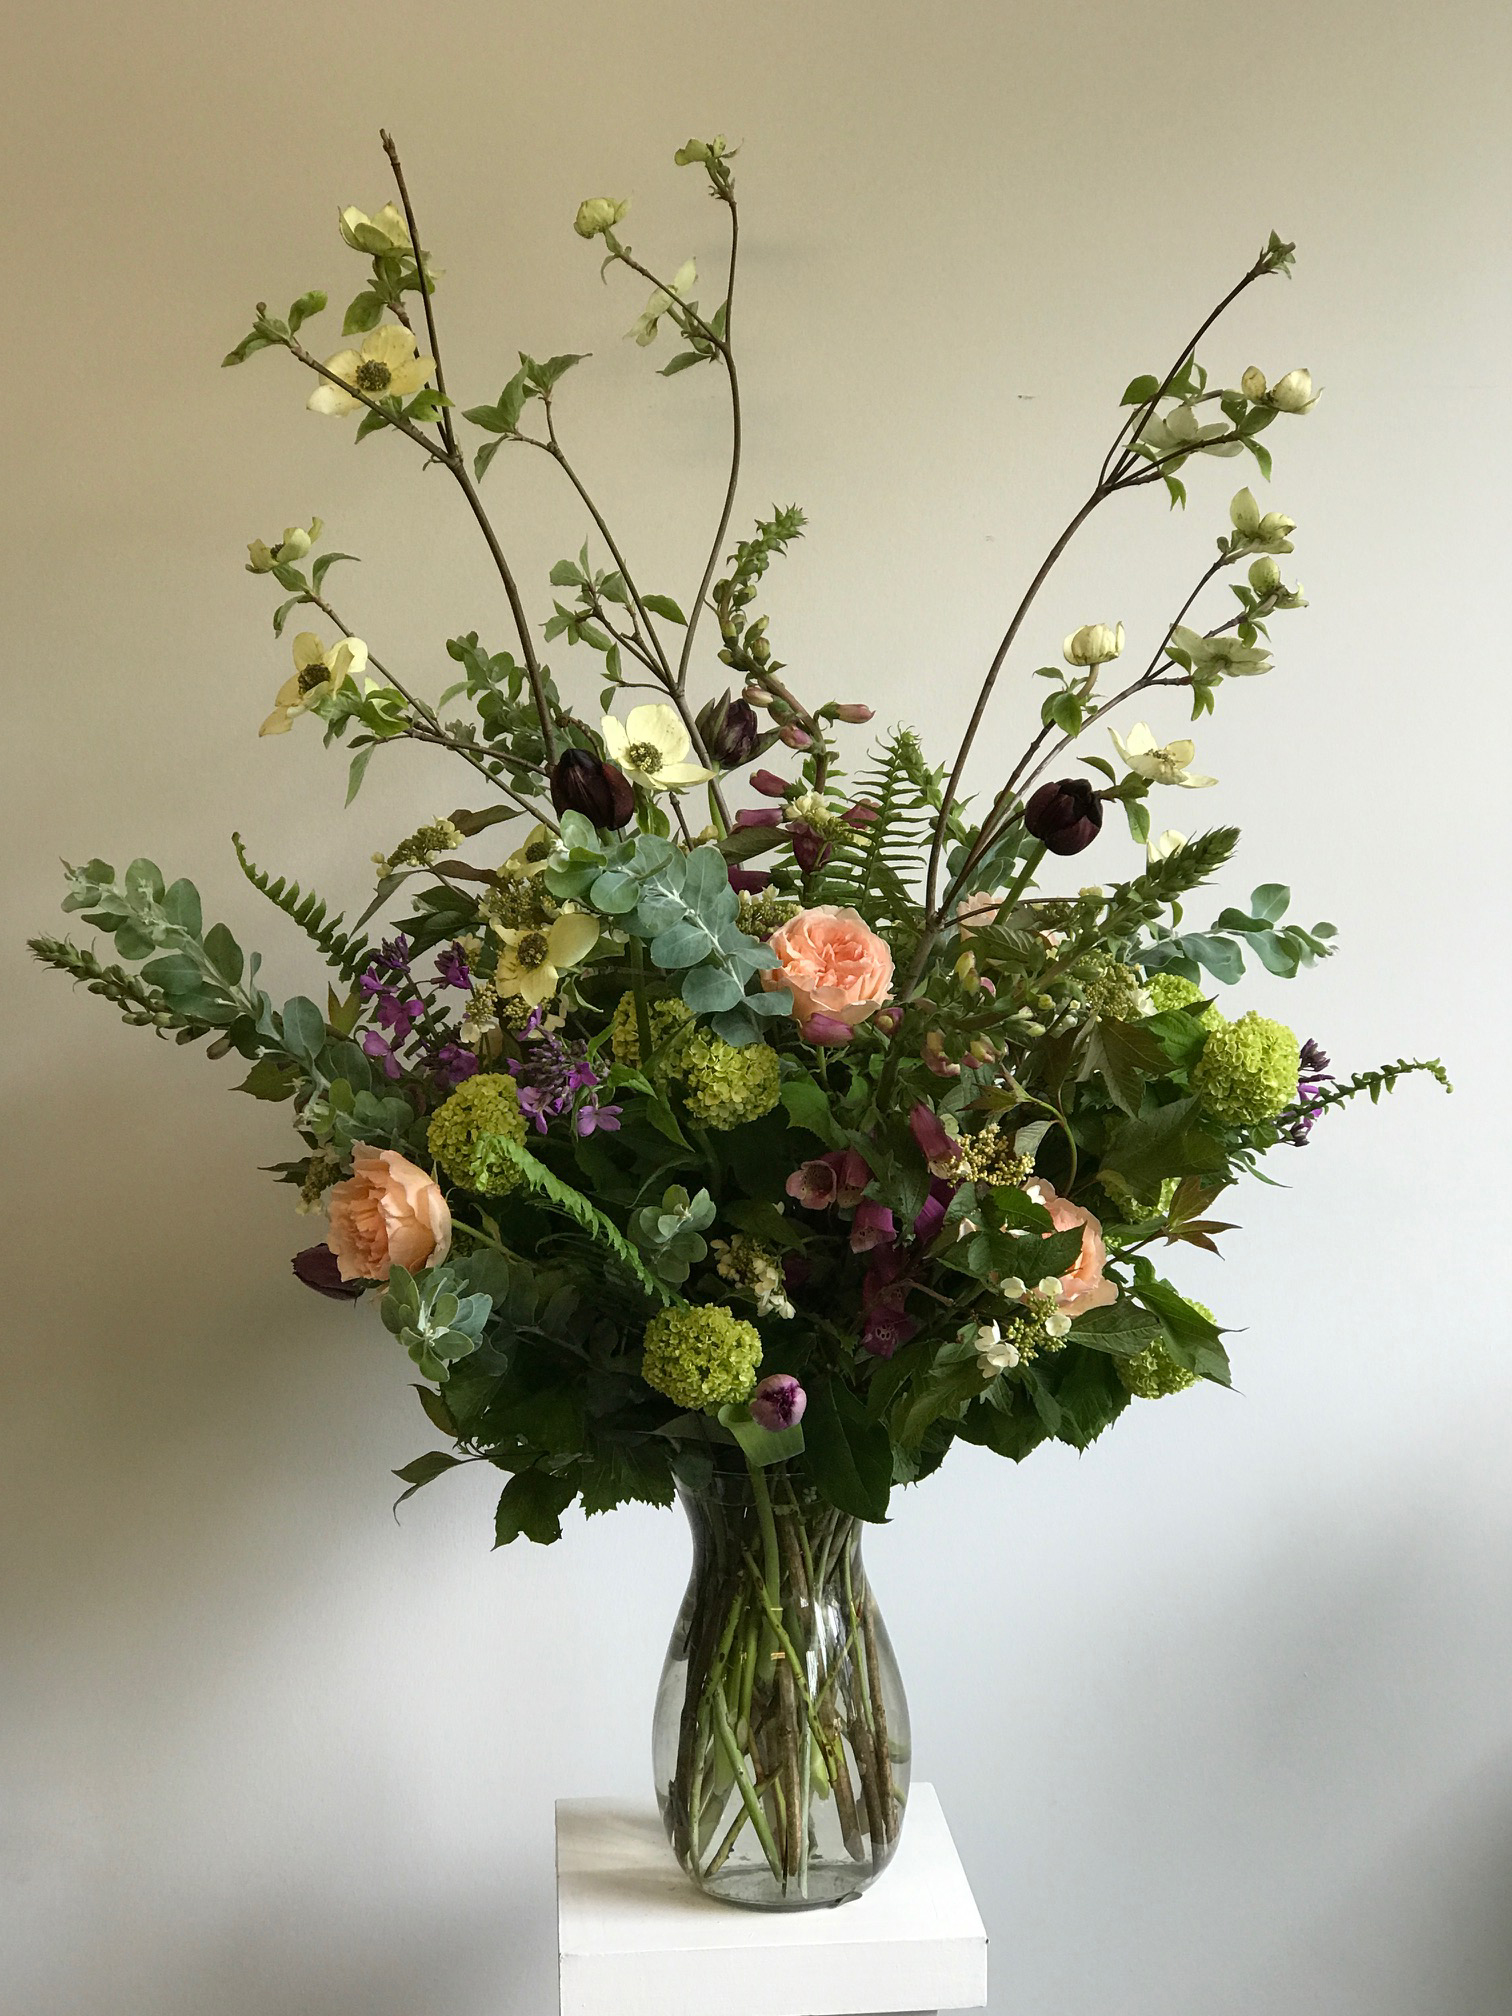 Corporate floral design in Portland, OR